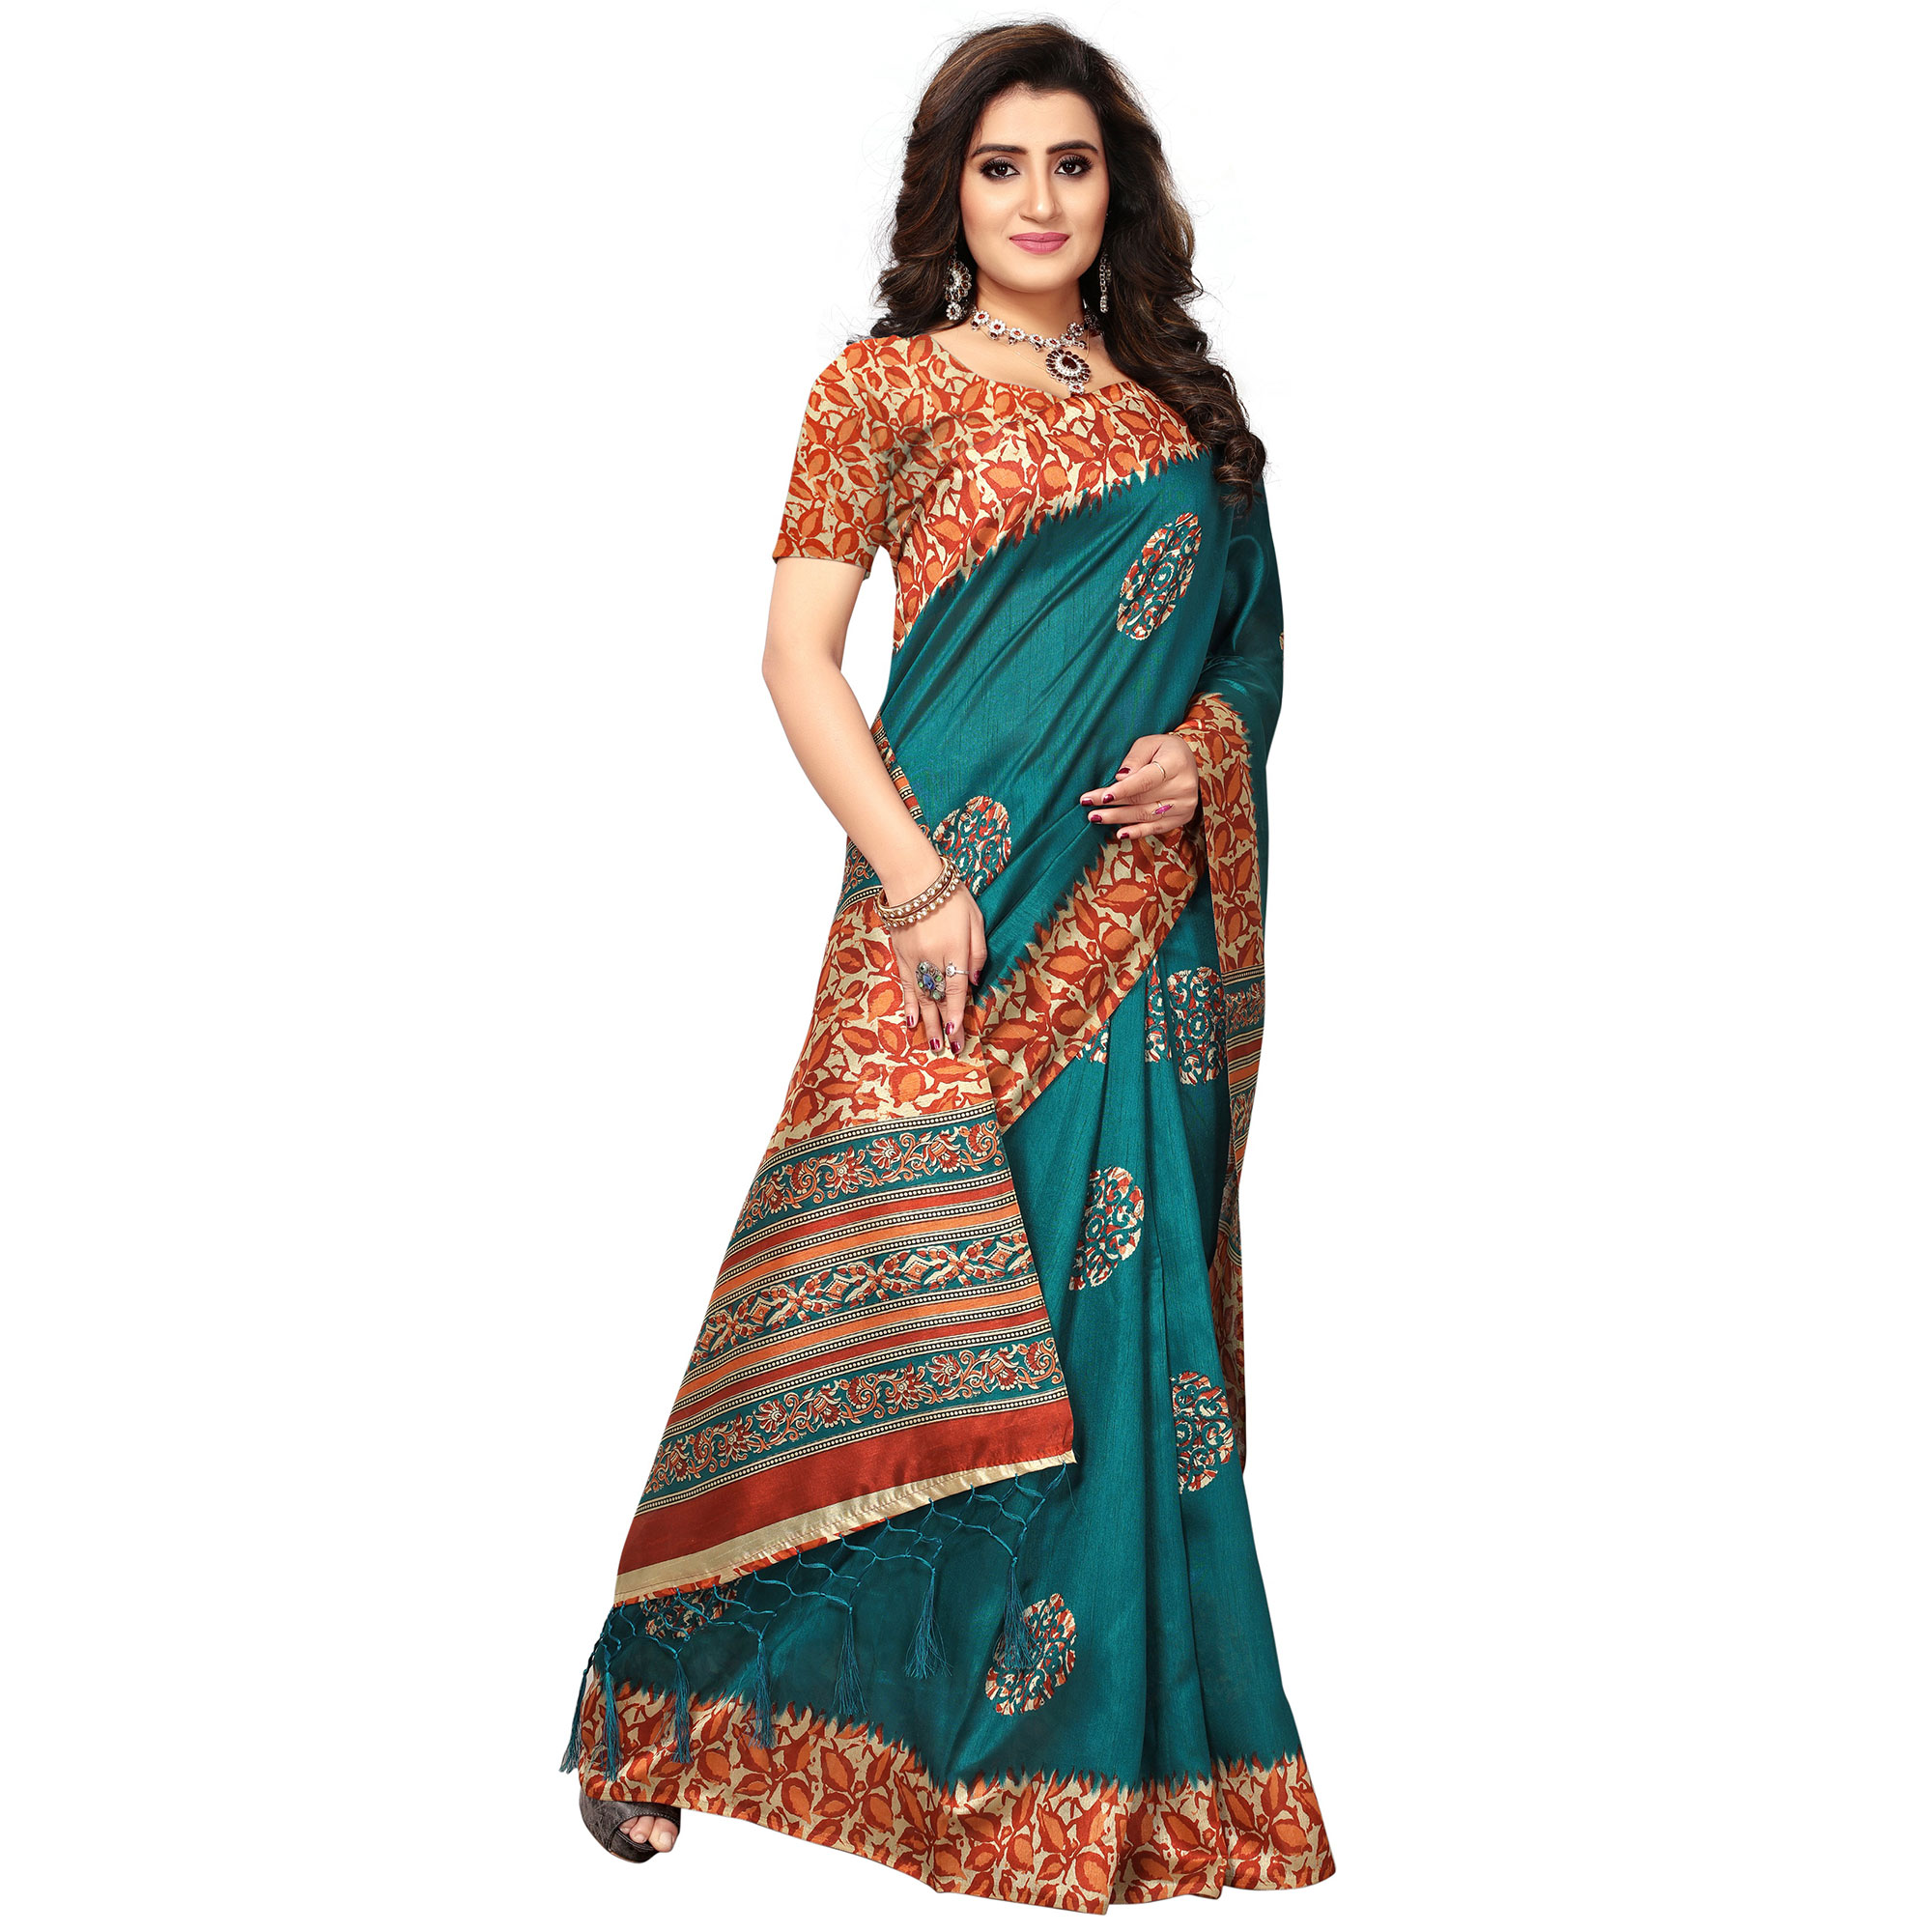 Exceptional Teal Blue Colored Casual Printed Khadi Silk Saree